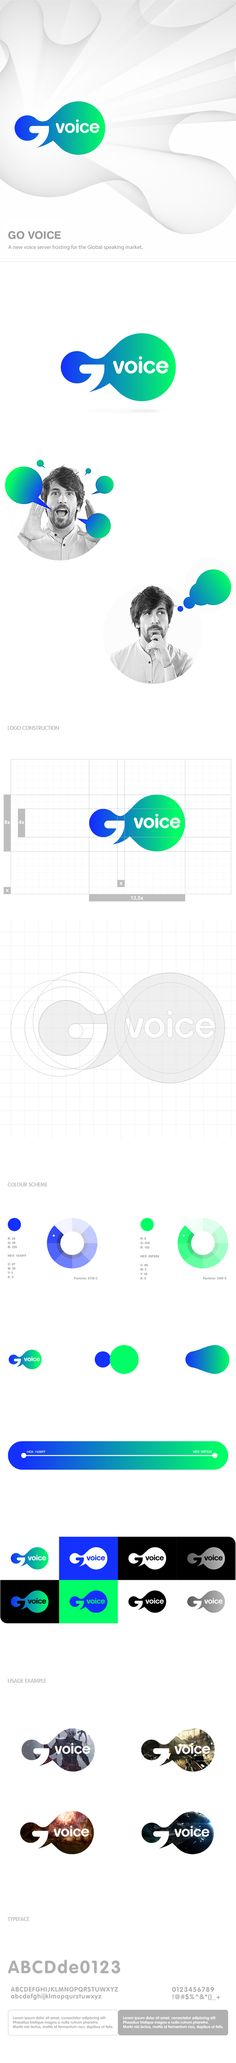 Go Voice by Fuse Collective, via Behance